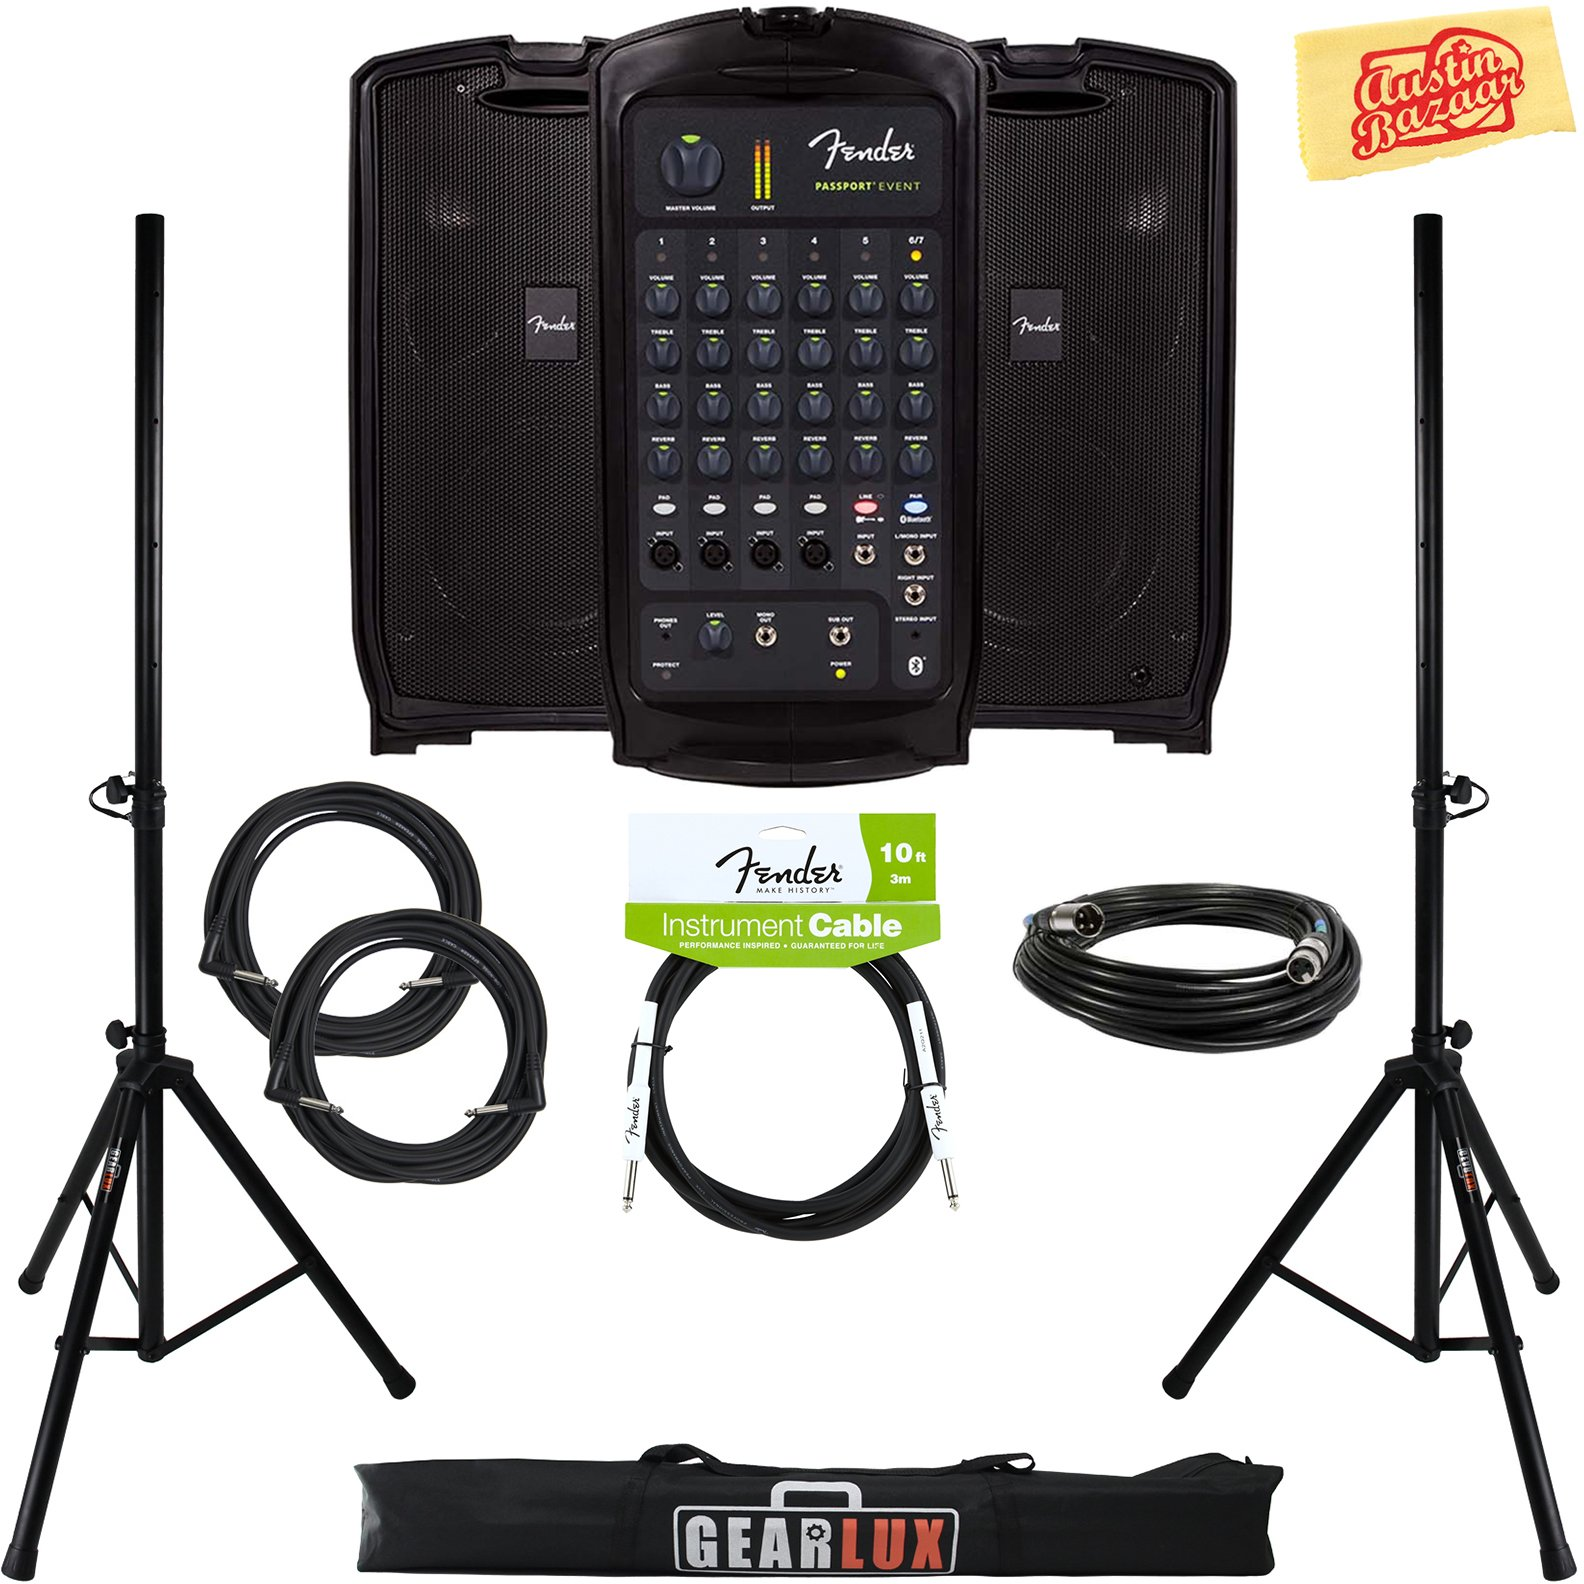 Fender Passport Event Portable PA System Bundle with Speaker Stands, XLR Cable, Instrument Cable, and Austin Bazaar Polishing Cloth